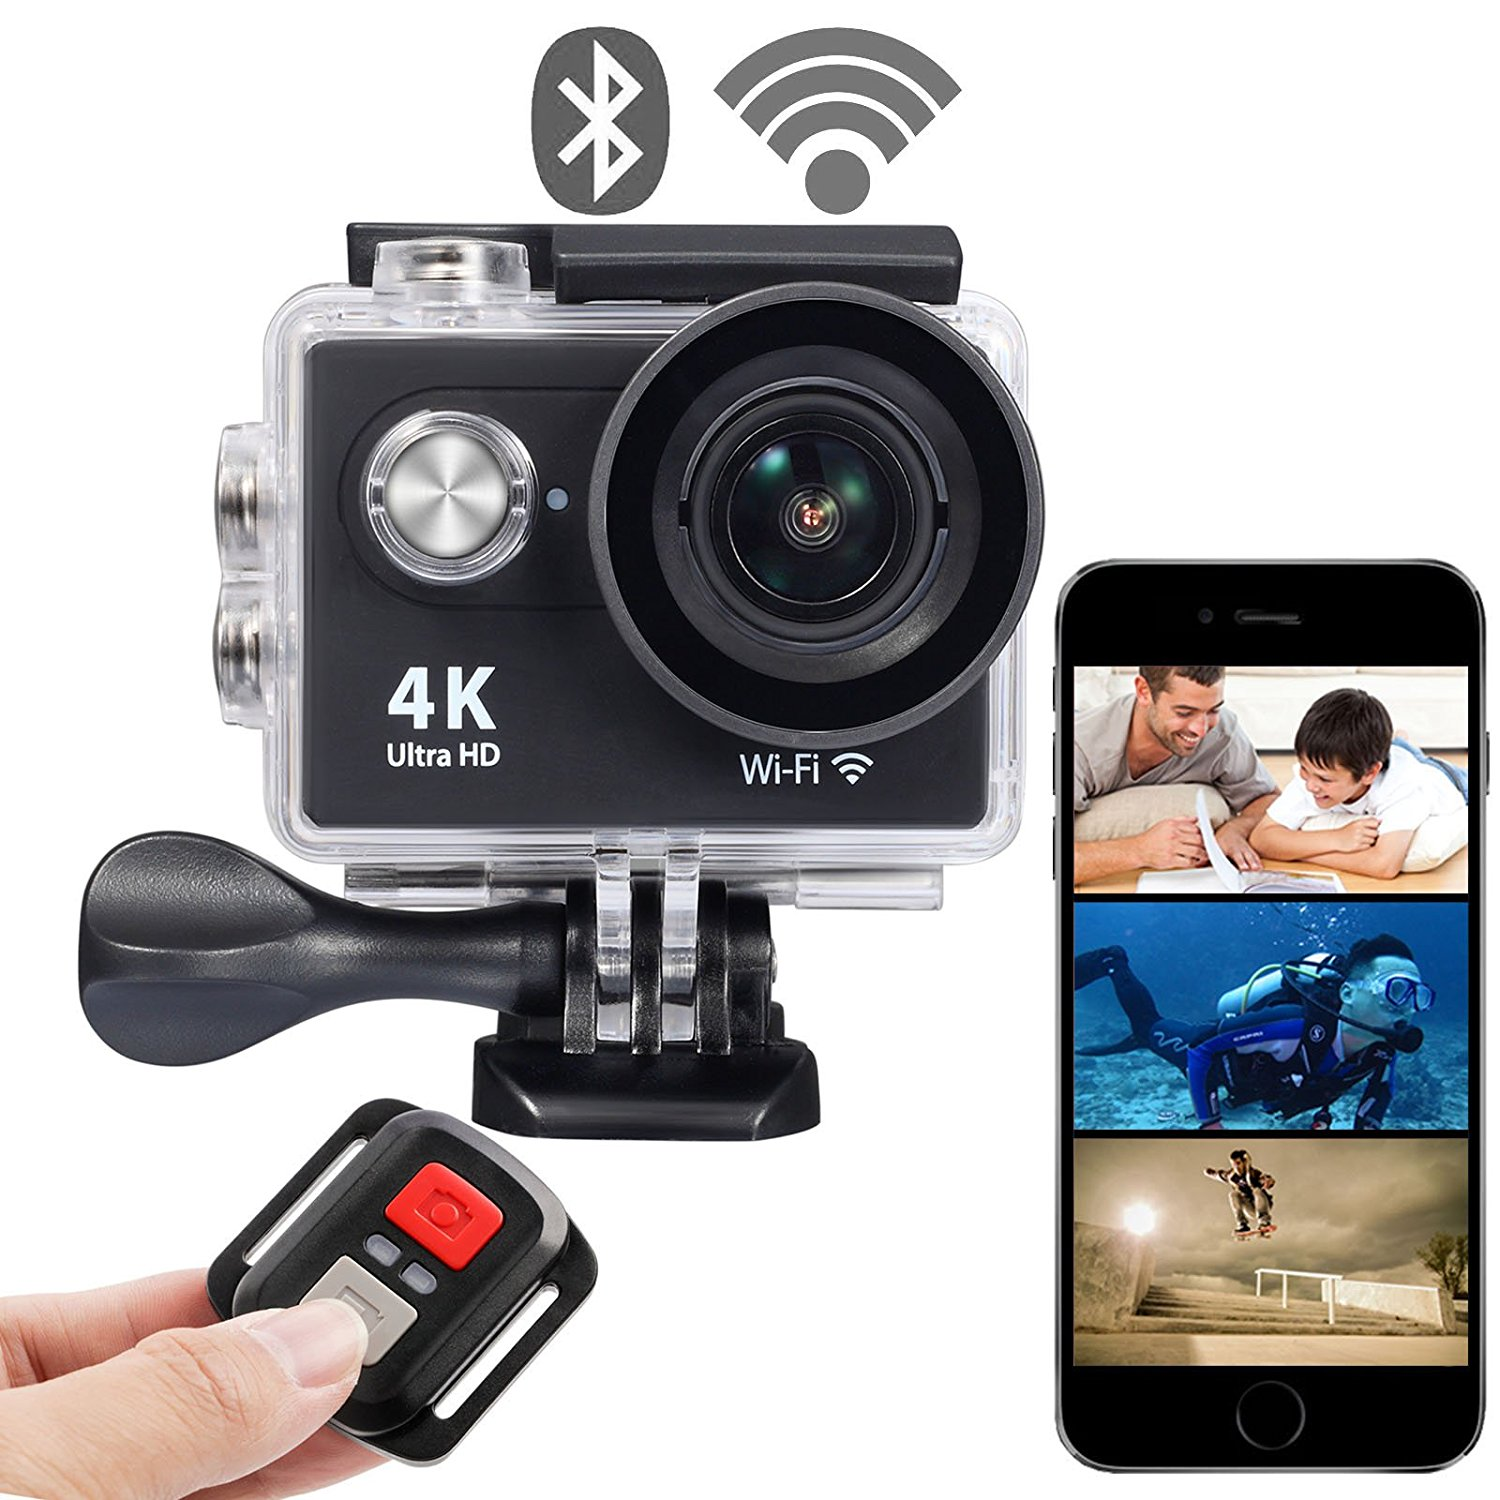 OnLyee 4K WIFI Sports Action Camera Ultra HD Waterproof DV Camcorder 12MP 170 Degree Wide Angle 2 inch LCD Screen/2.4G Remote Control/ Rechargeable Batteries  Main Image